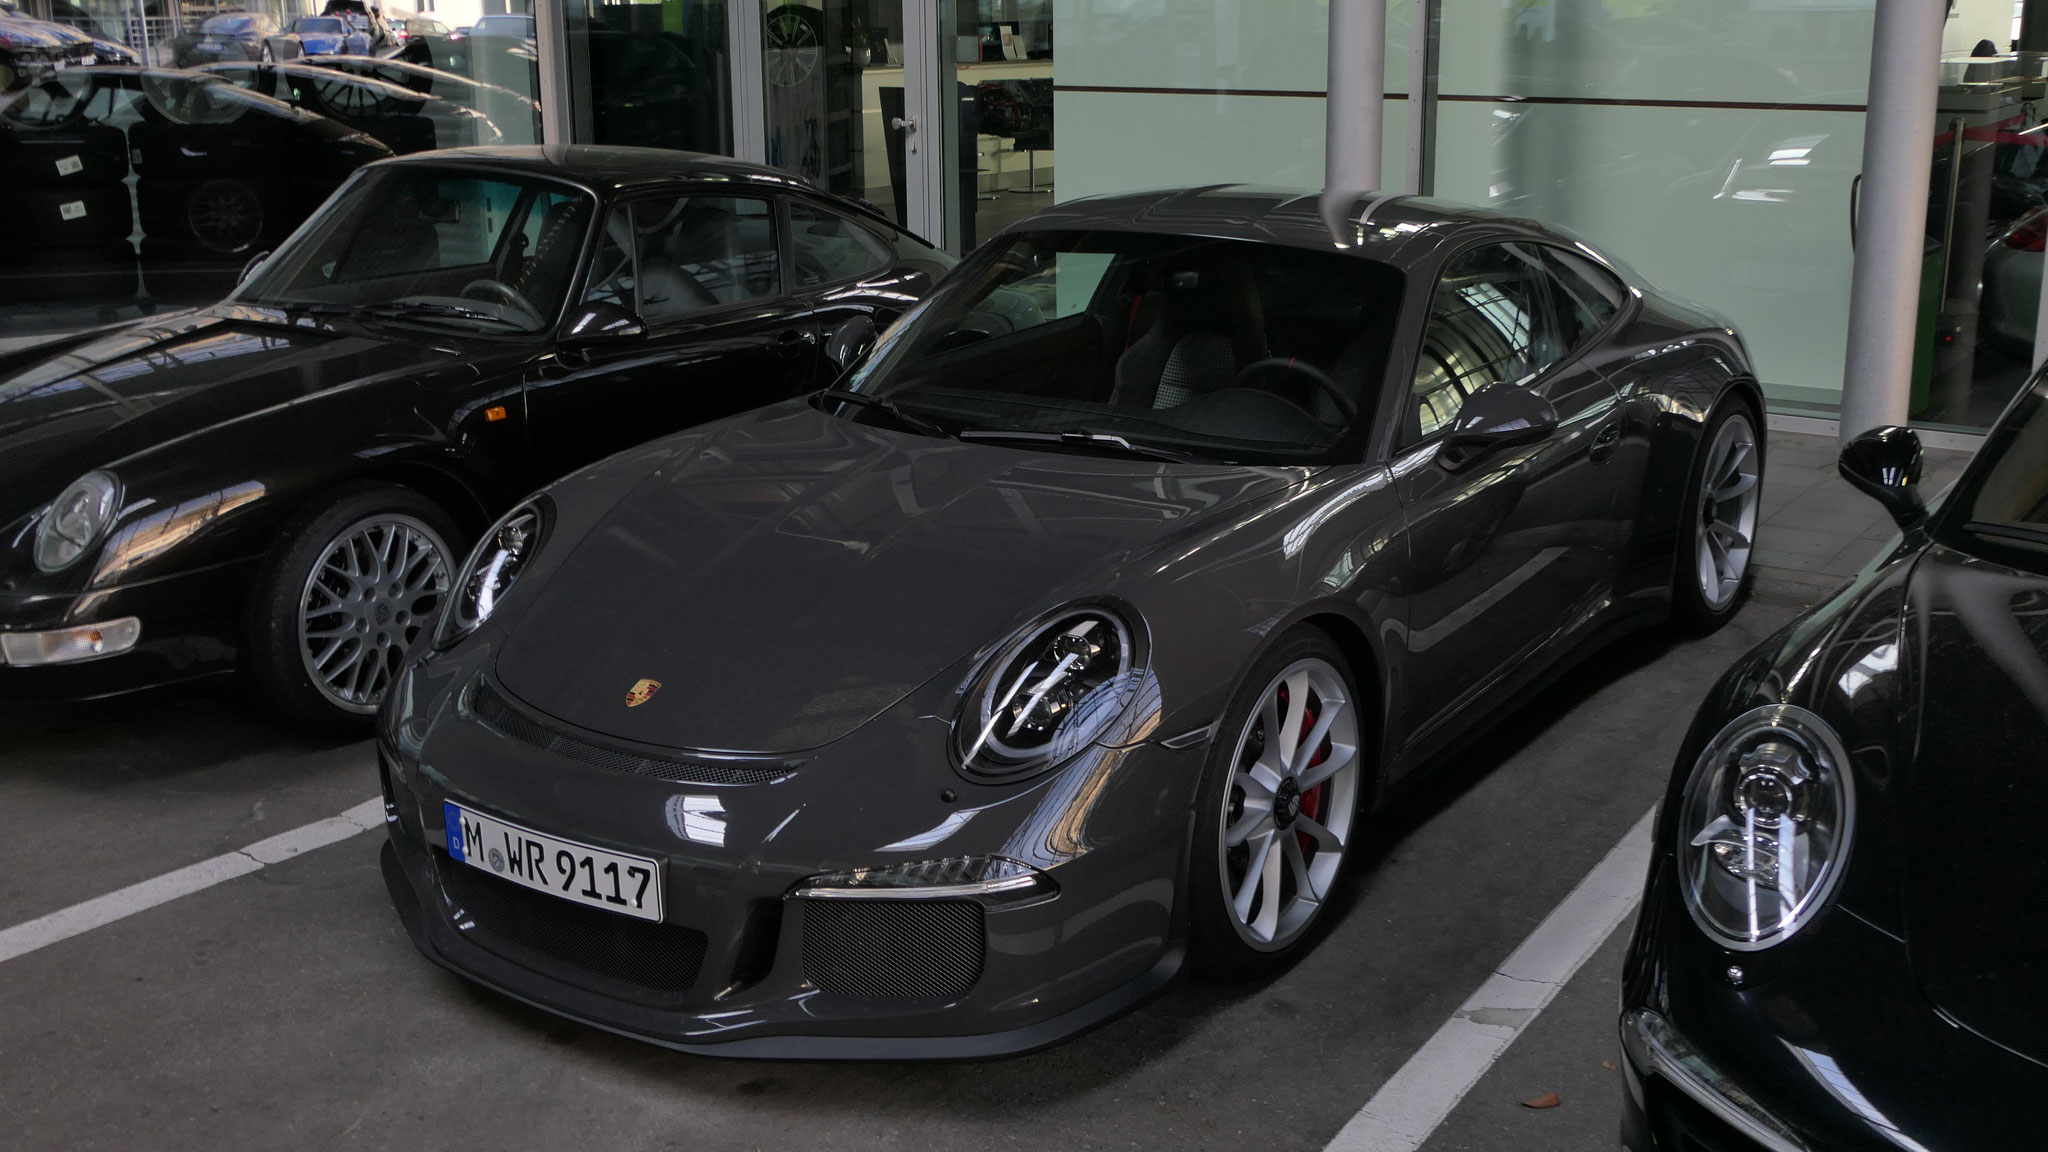 Porsche 991 GT3 Touring Package - M-WR-9117